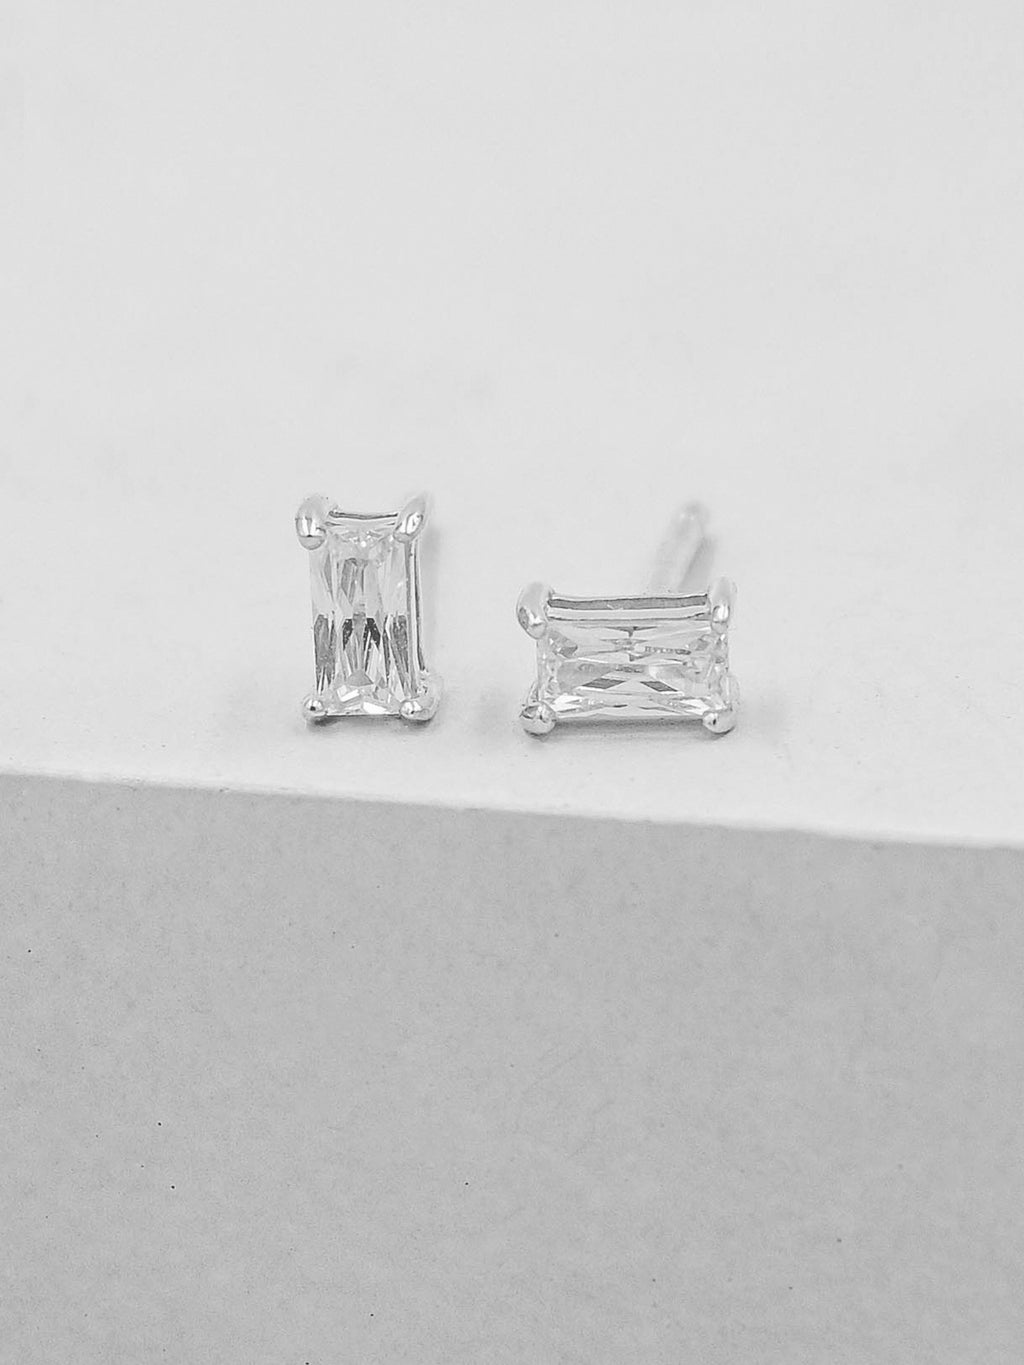 Silver Baguette CZ stones prong  style Stud Earrings by the Faint Hearted Jewelry